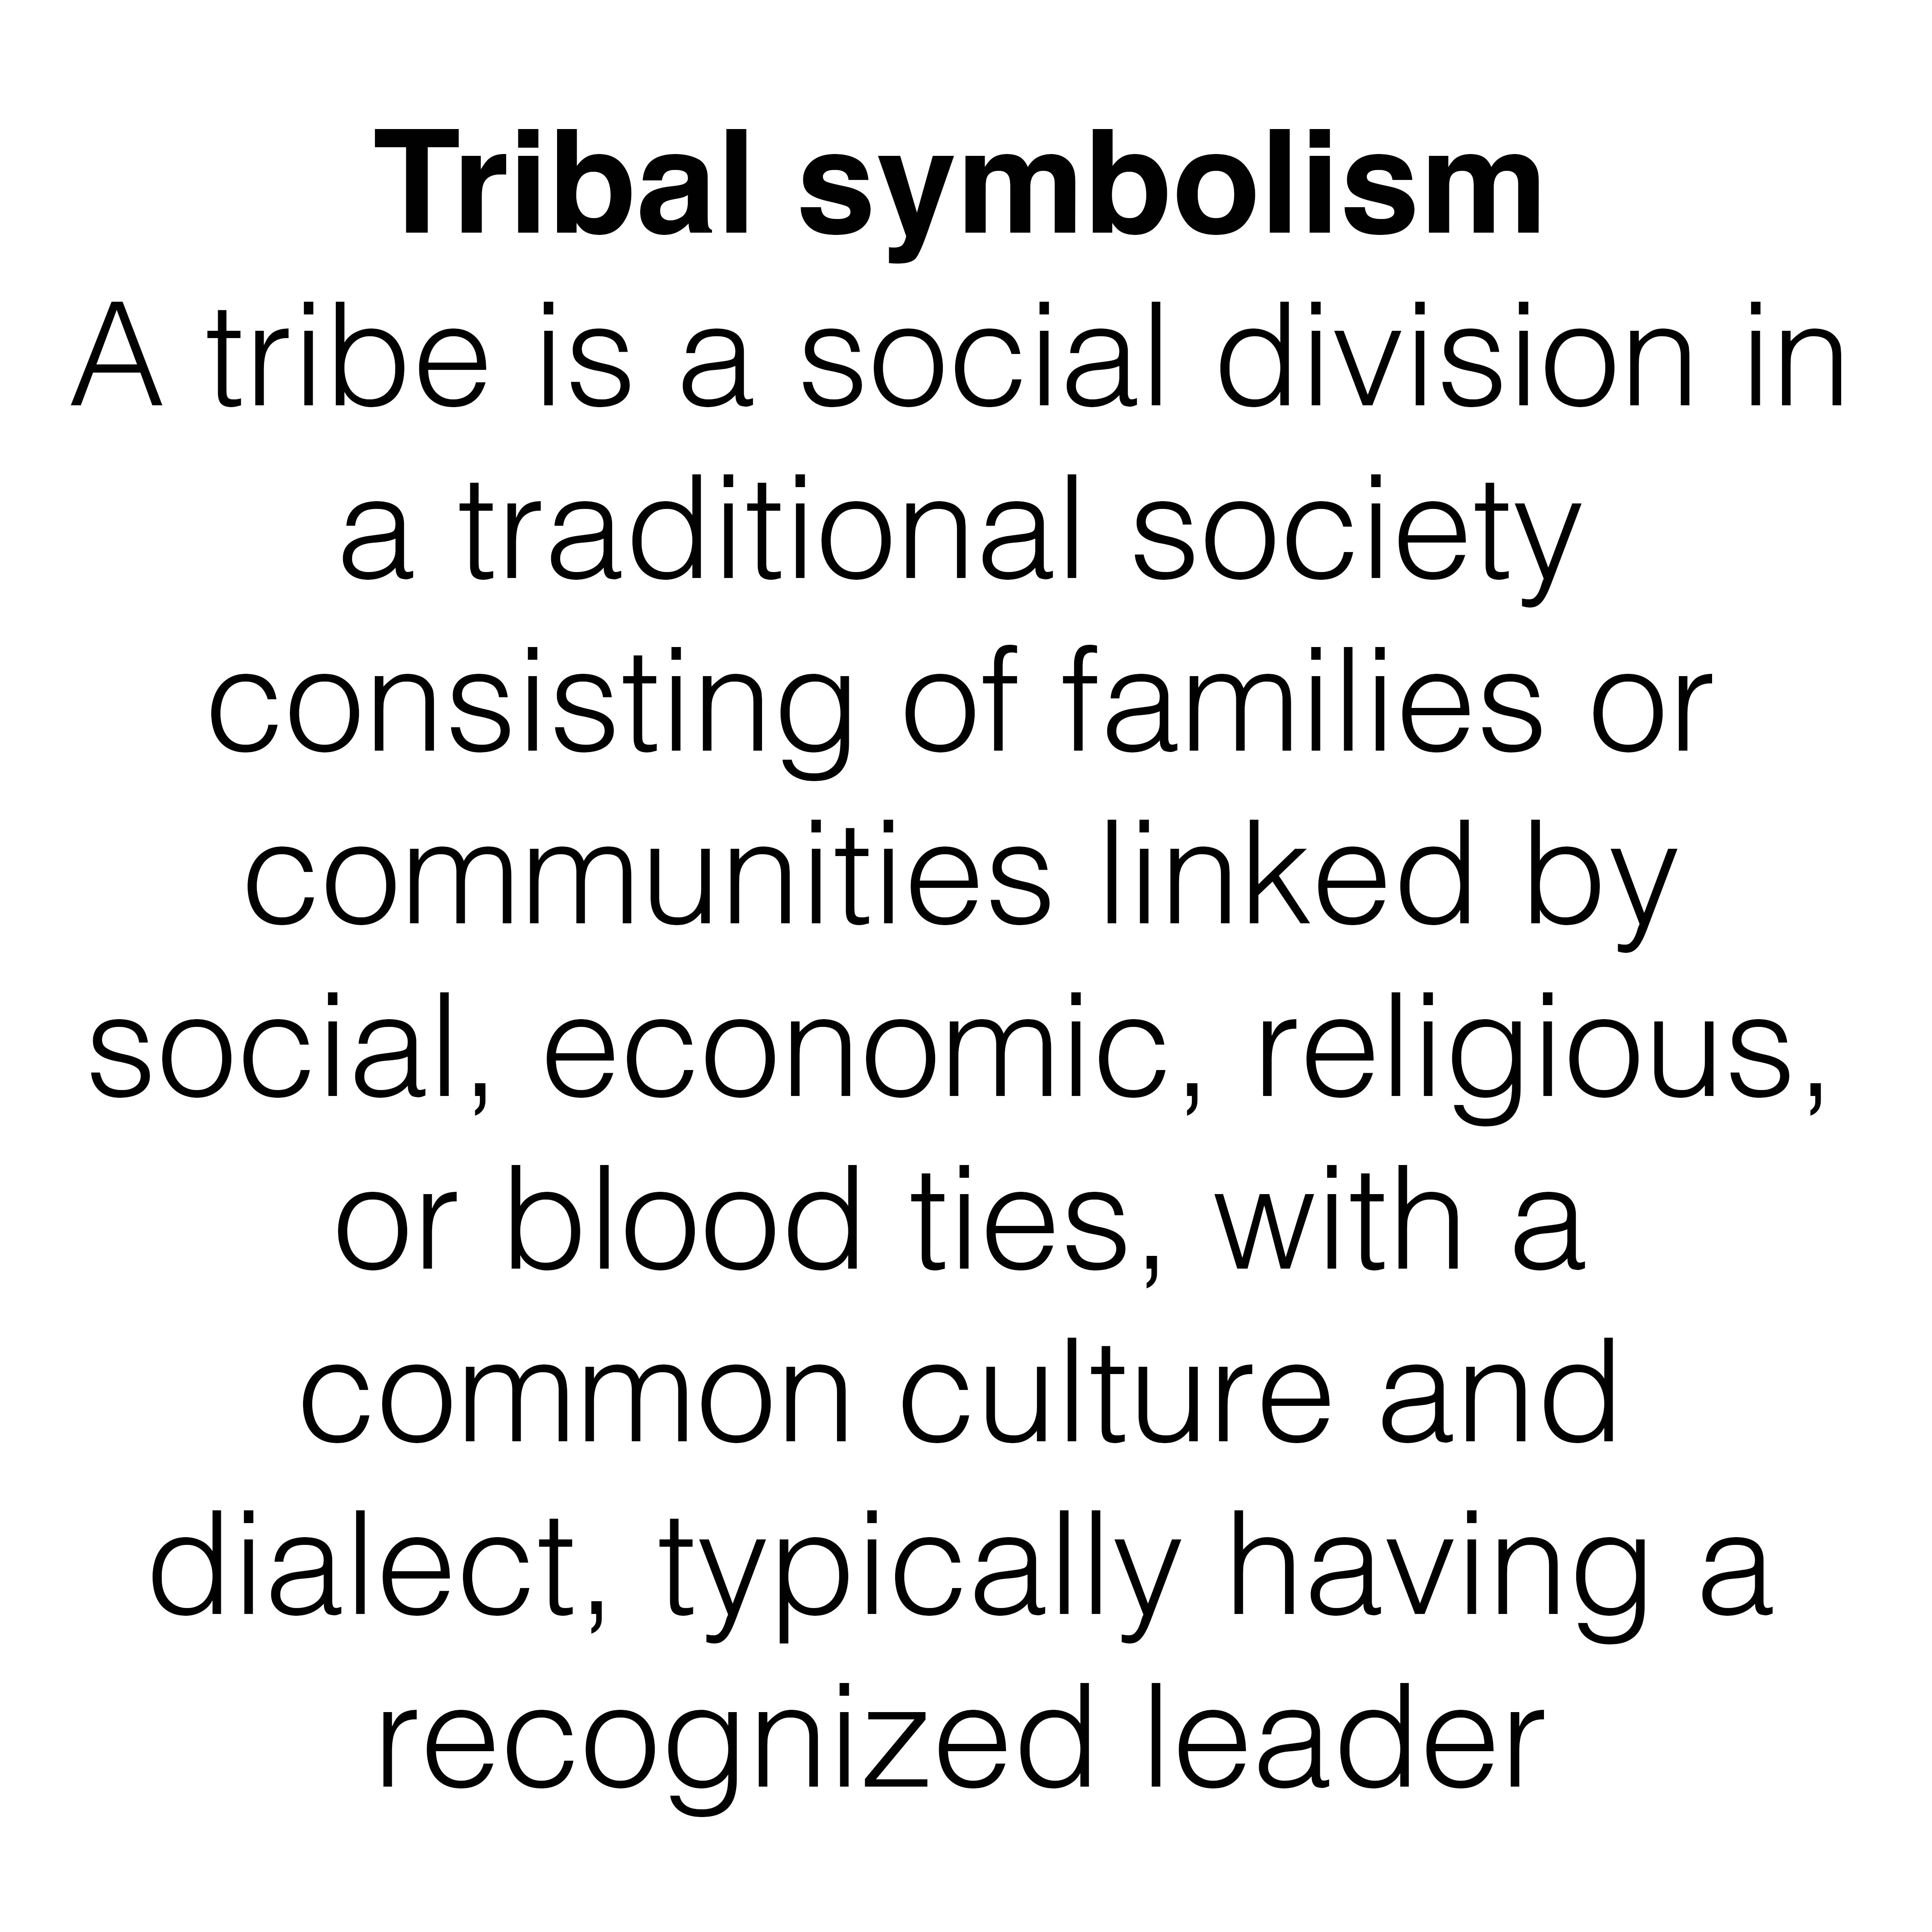 Definition of a tribe the characteristics that tribal symbolism definition of a tribe the characteristics that tribal symbolism bases itself around buycottarizona